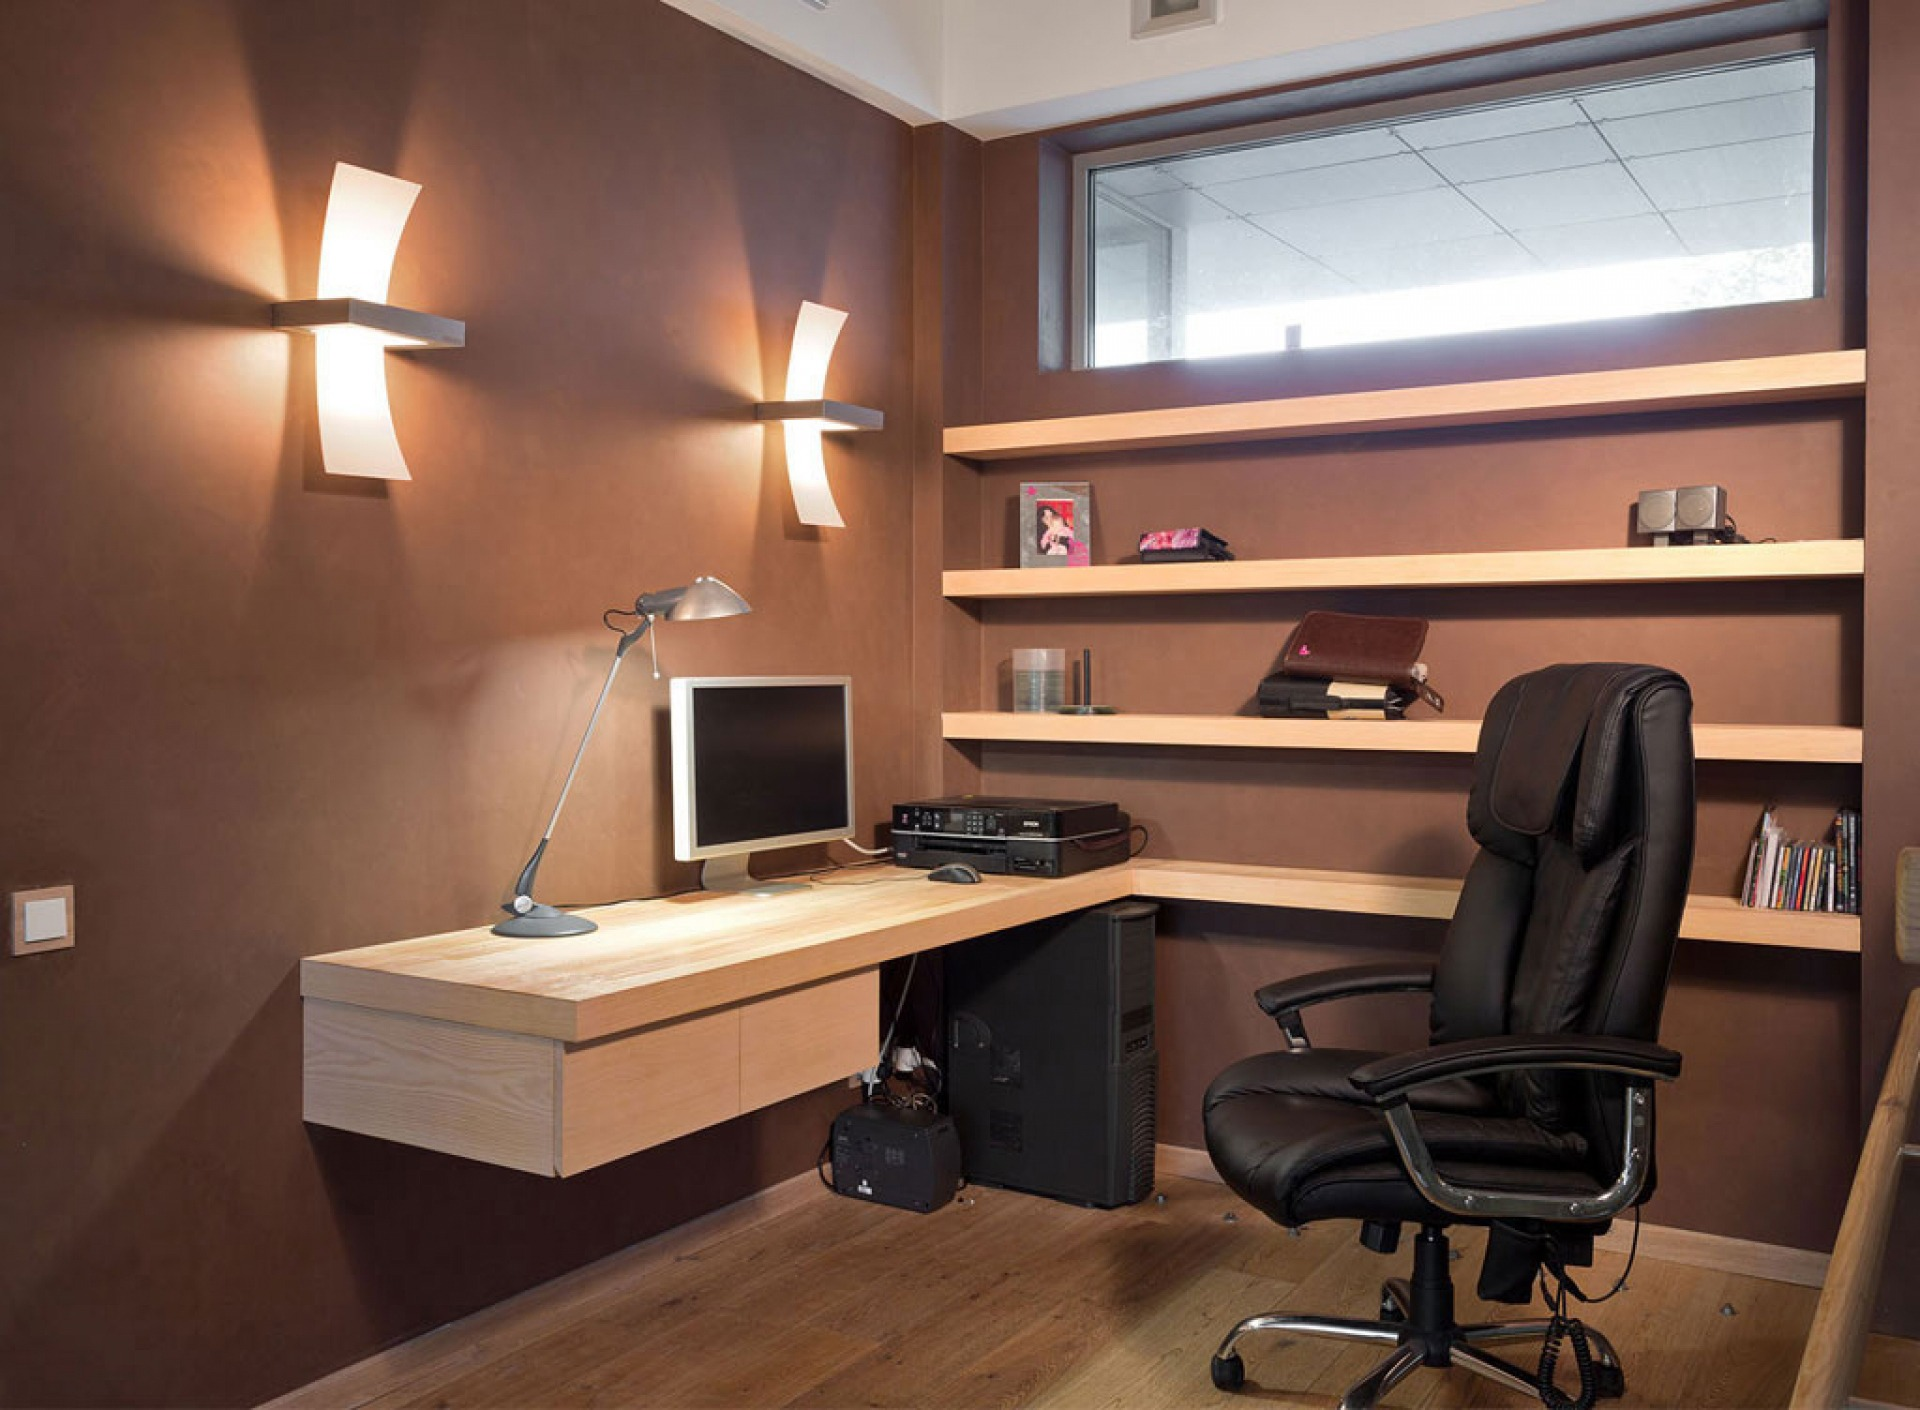 10 Excellent Small Office Interior Design Ideas - ARCHLUX.NET